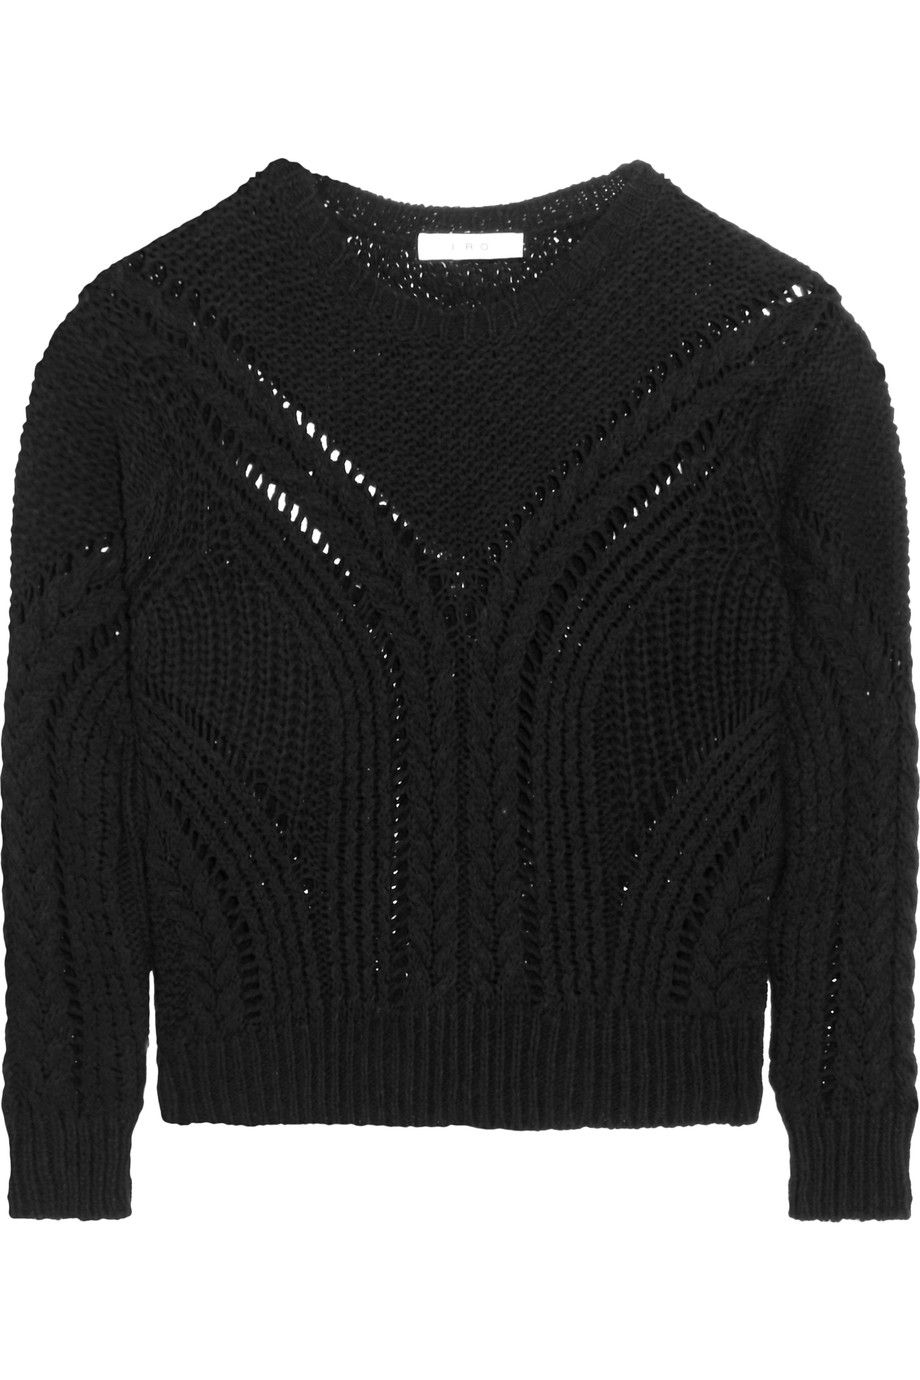 Shop on-sale IRO Cable-knit cotton-blend sweater. | //OUTFIT ...